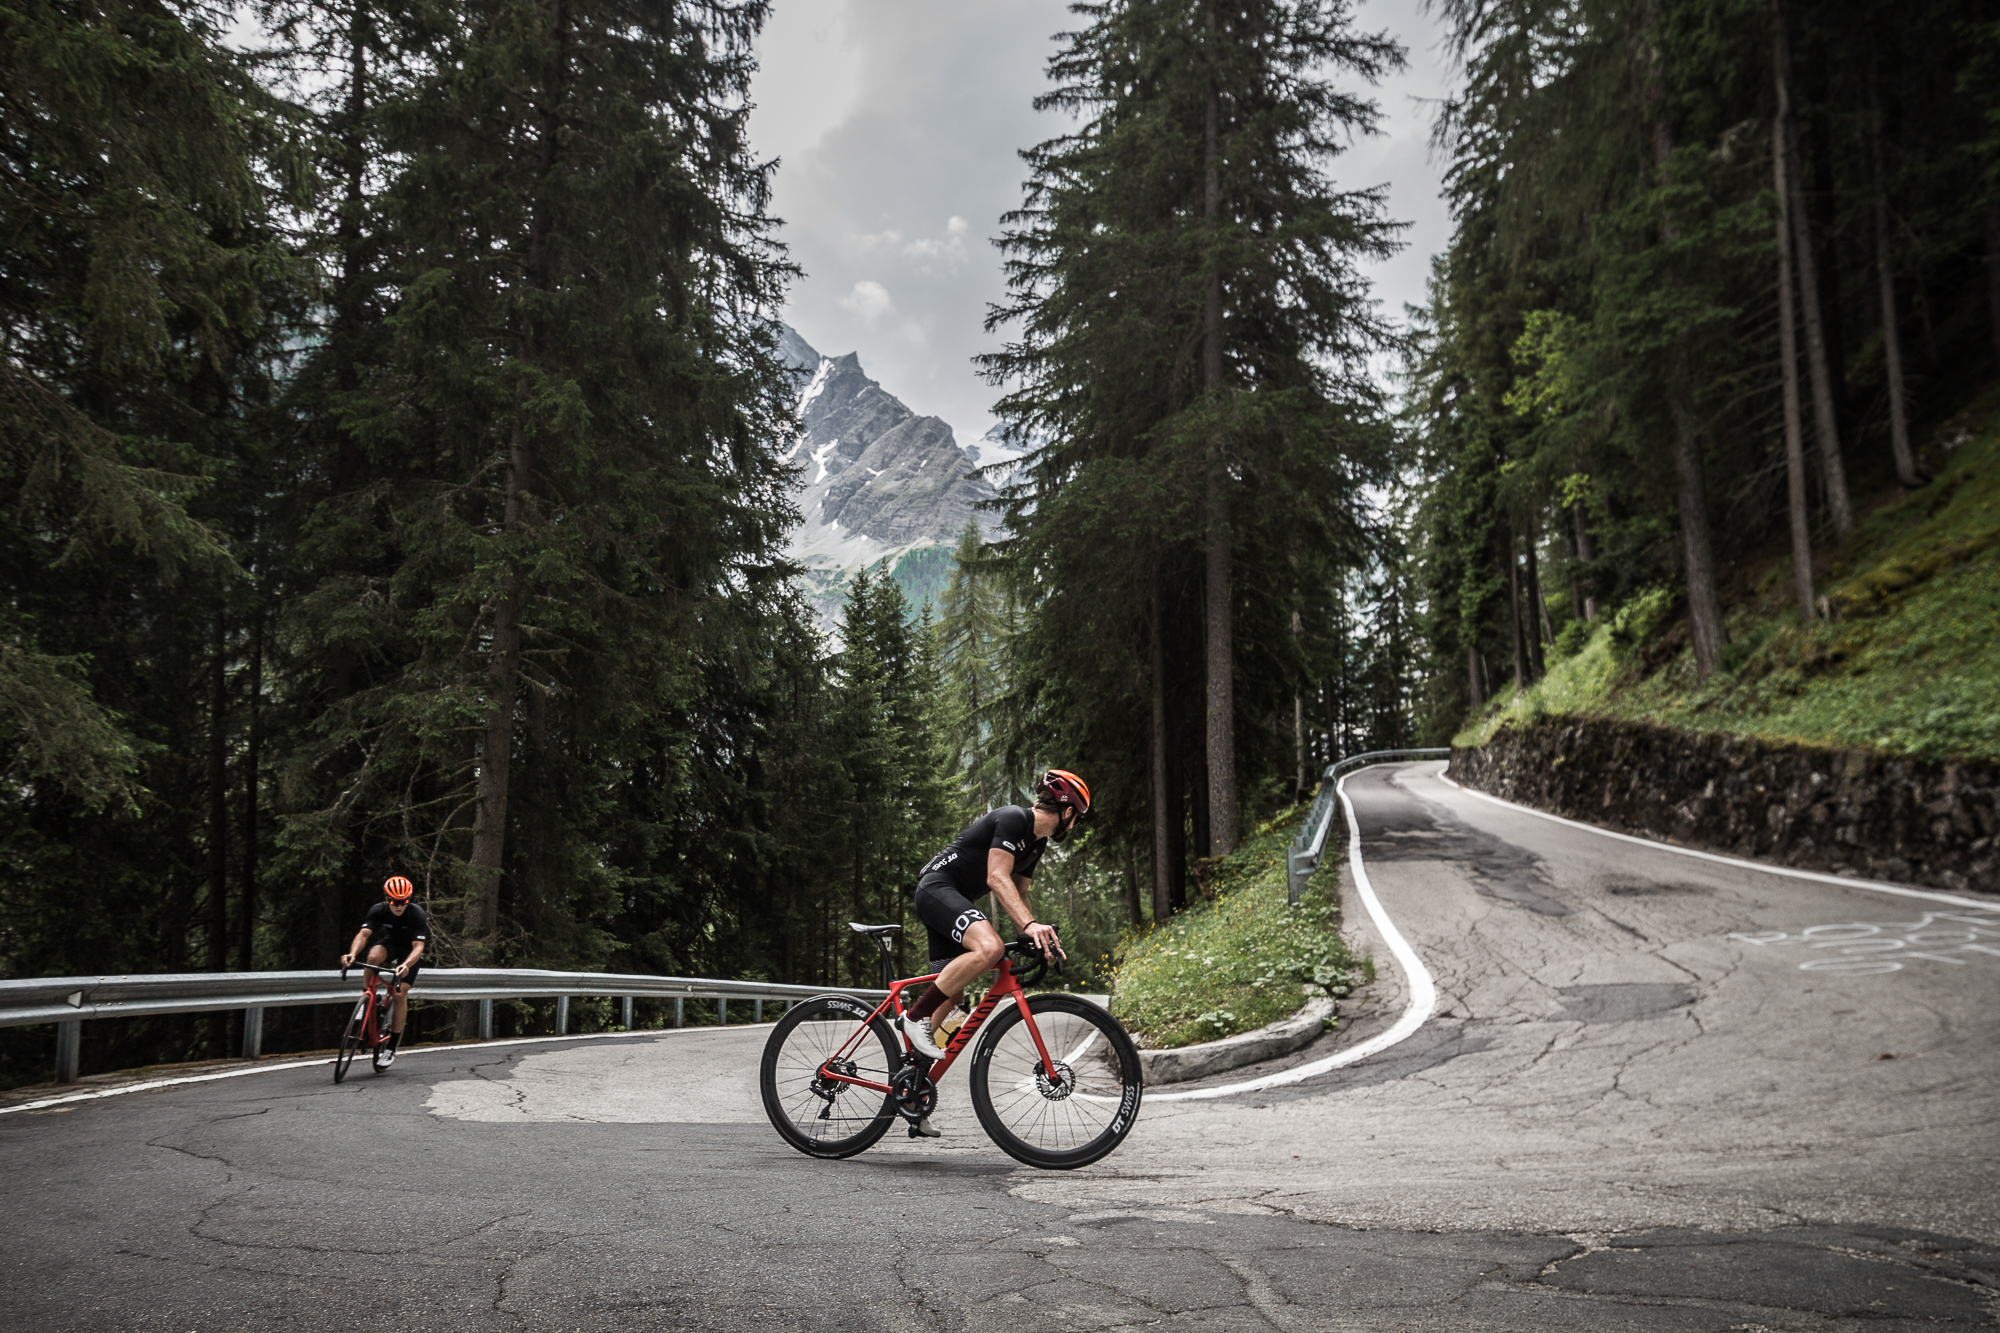 ROUTE: - Augsburg - Füssen - Nauders - Kaltern - Levico Therme - Feltre5 Days of riding and good times. 664km over the alps and Dolomites. 11.757 moa. You and 399 friends.Find the all route information here: